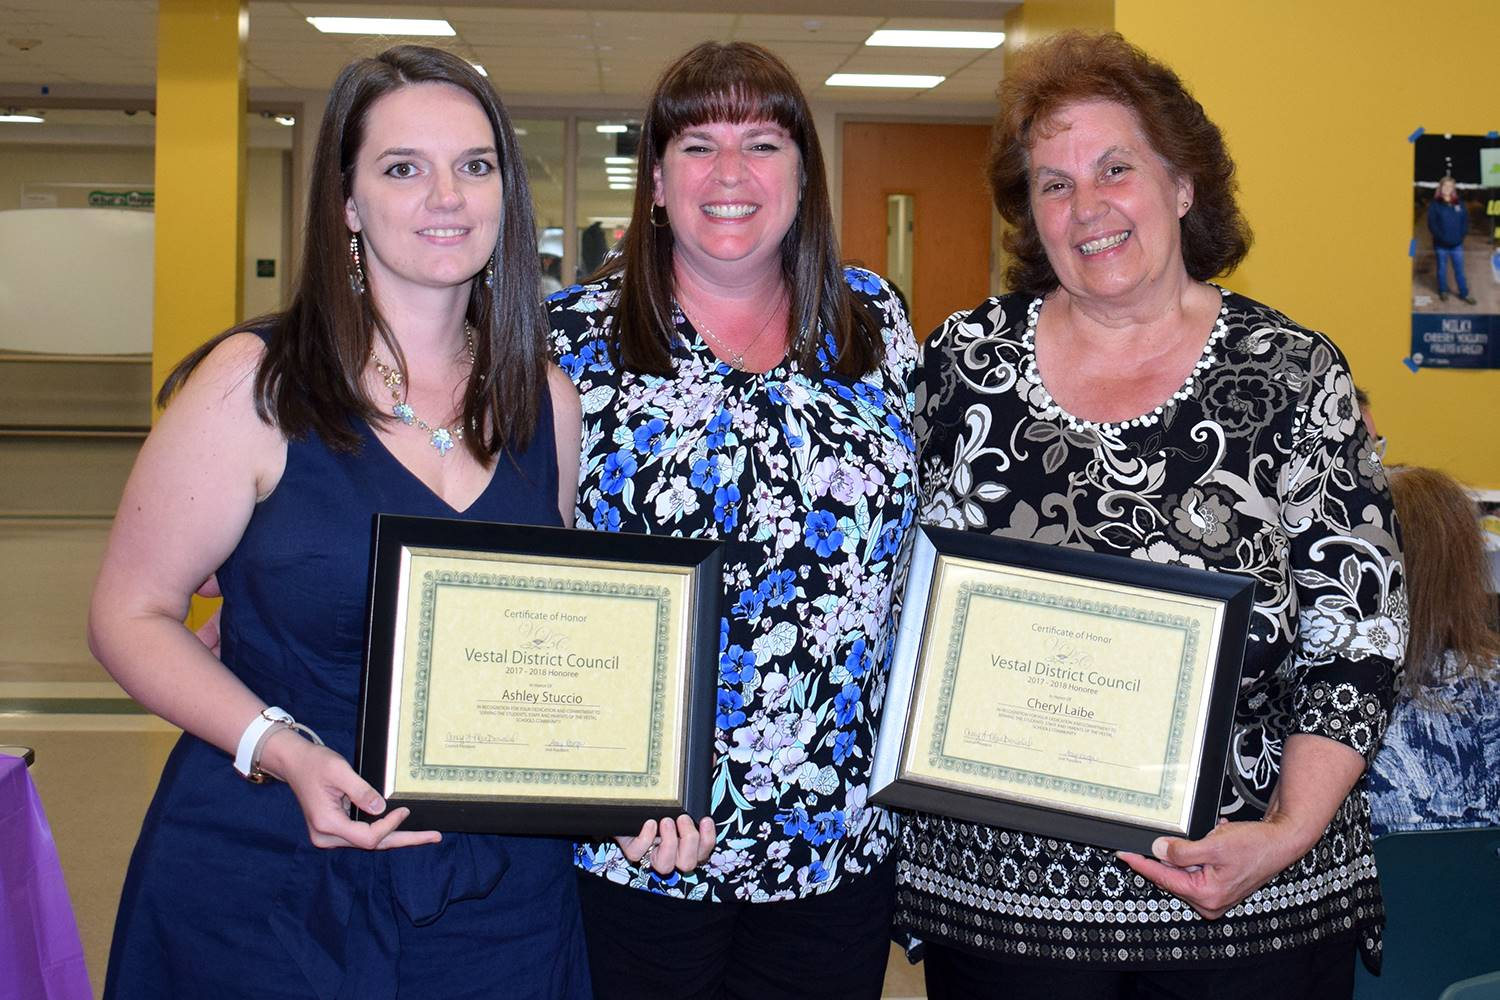 Vestal Hills Elementary Parent-Teacher Association president presents her school's two honorees